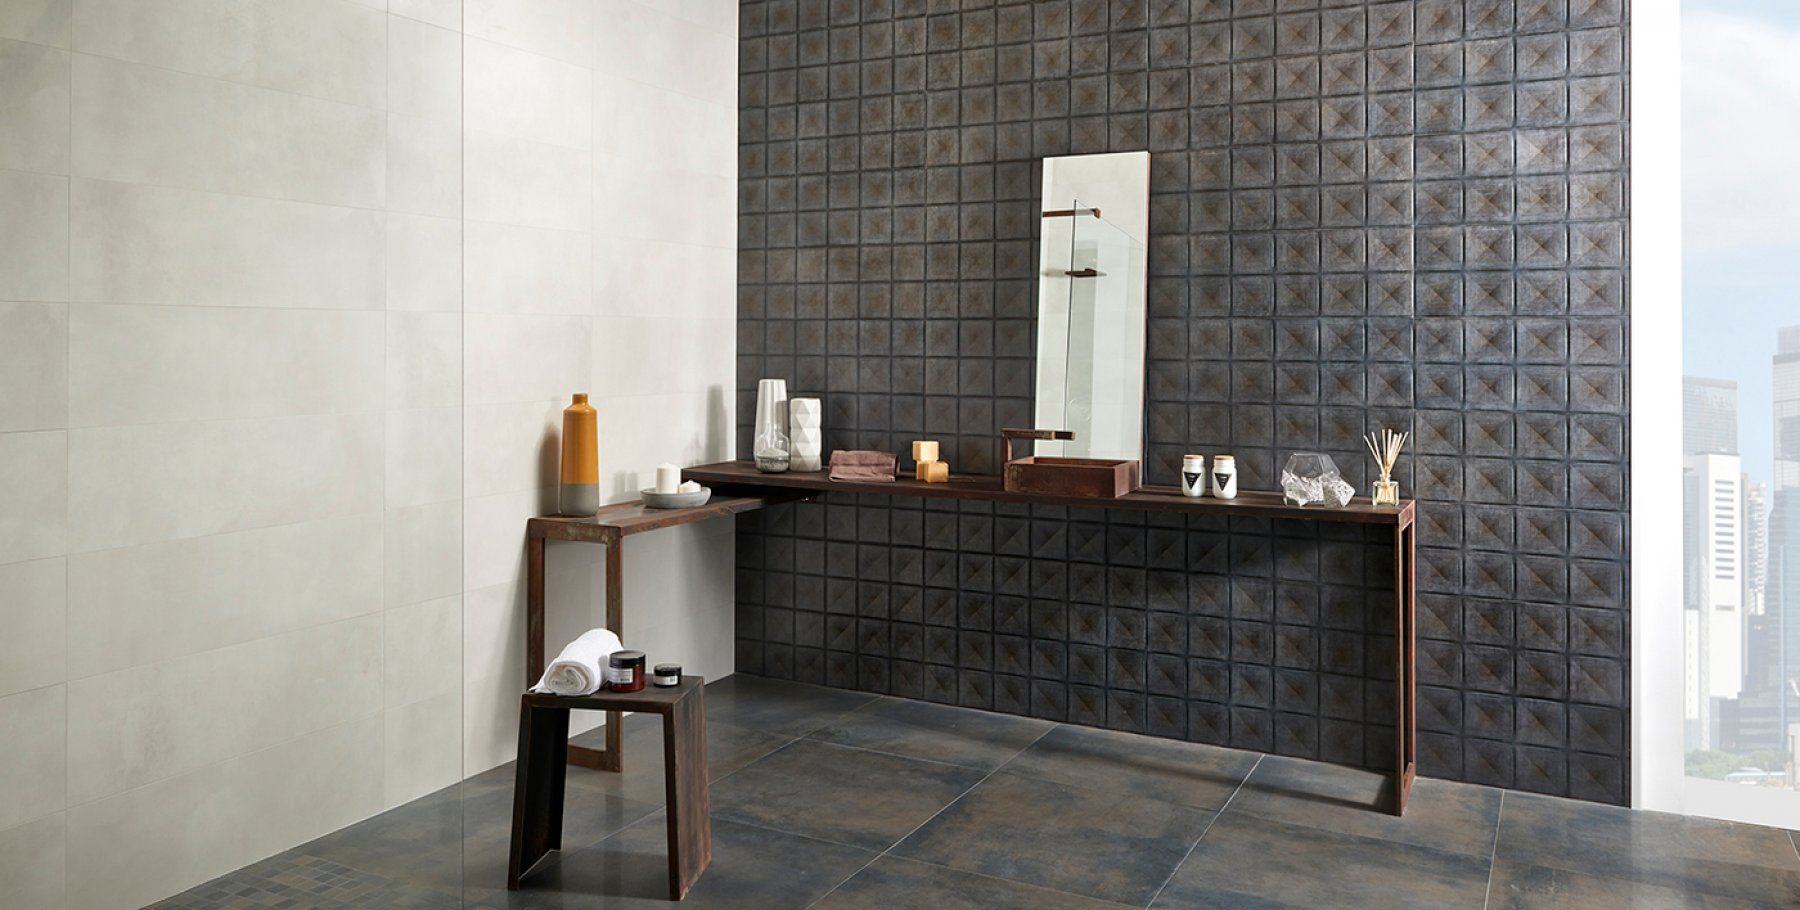 Badezimmer Fliesen 30 X 90 Leeds Concept Available In The Following Wall Tiles Sizes 30x90